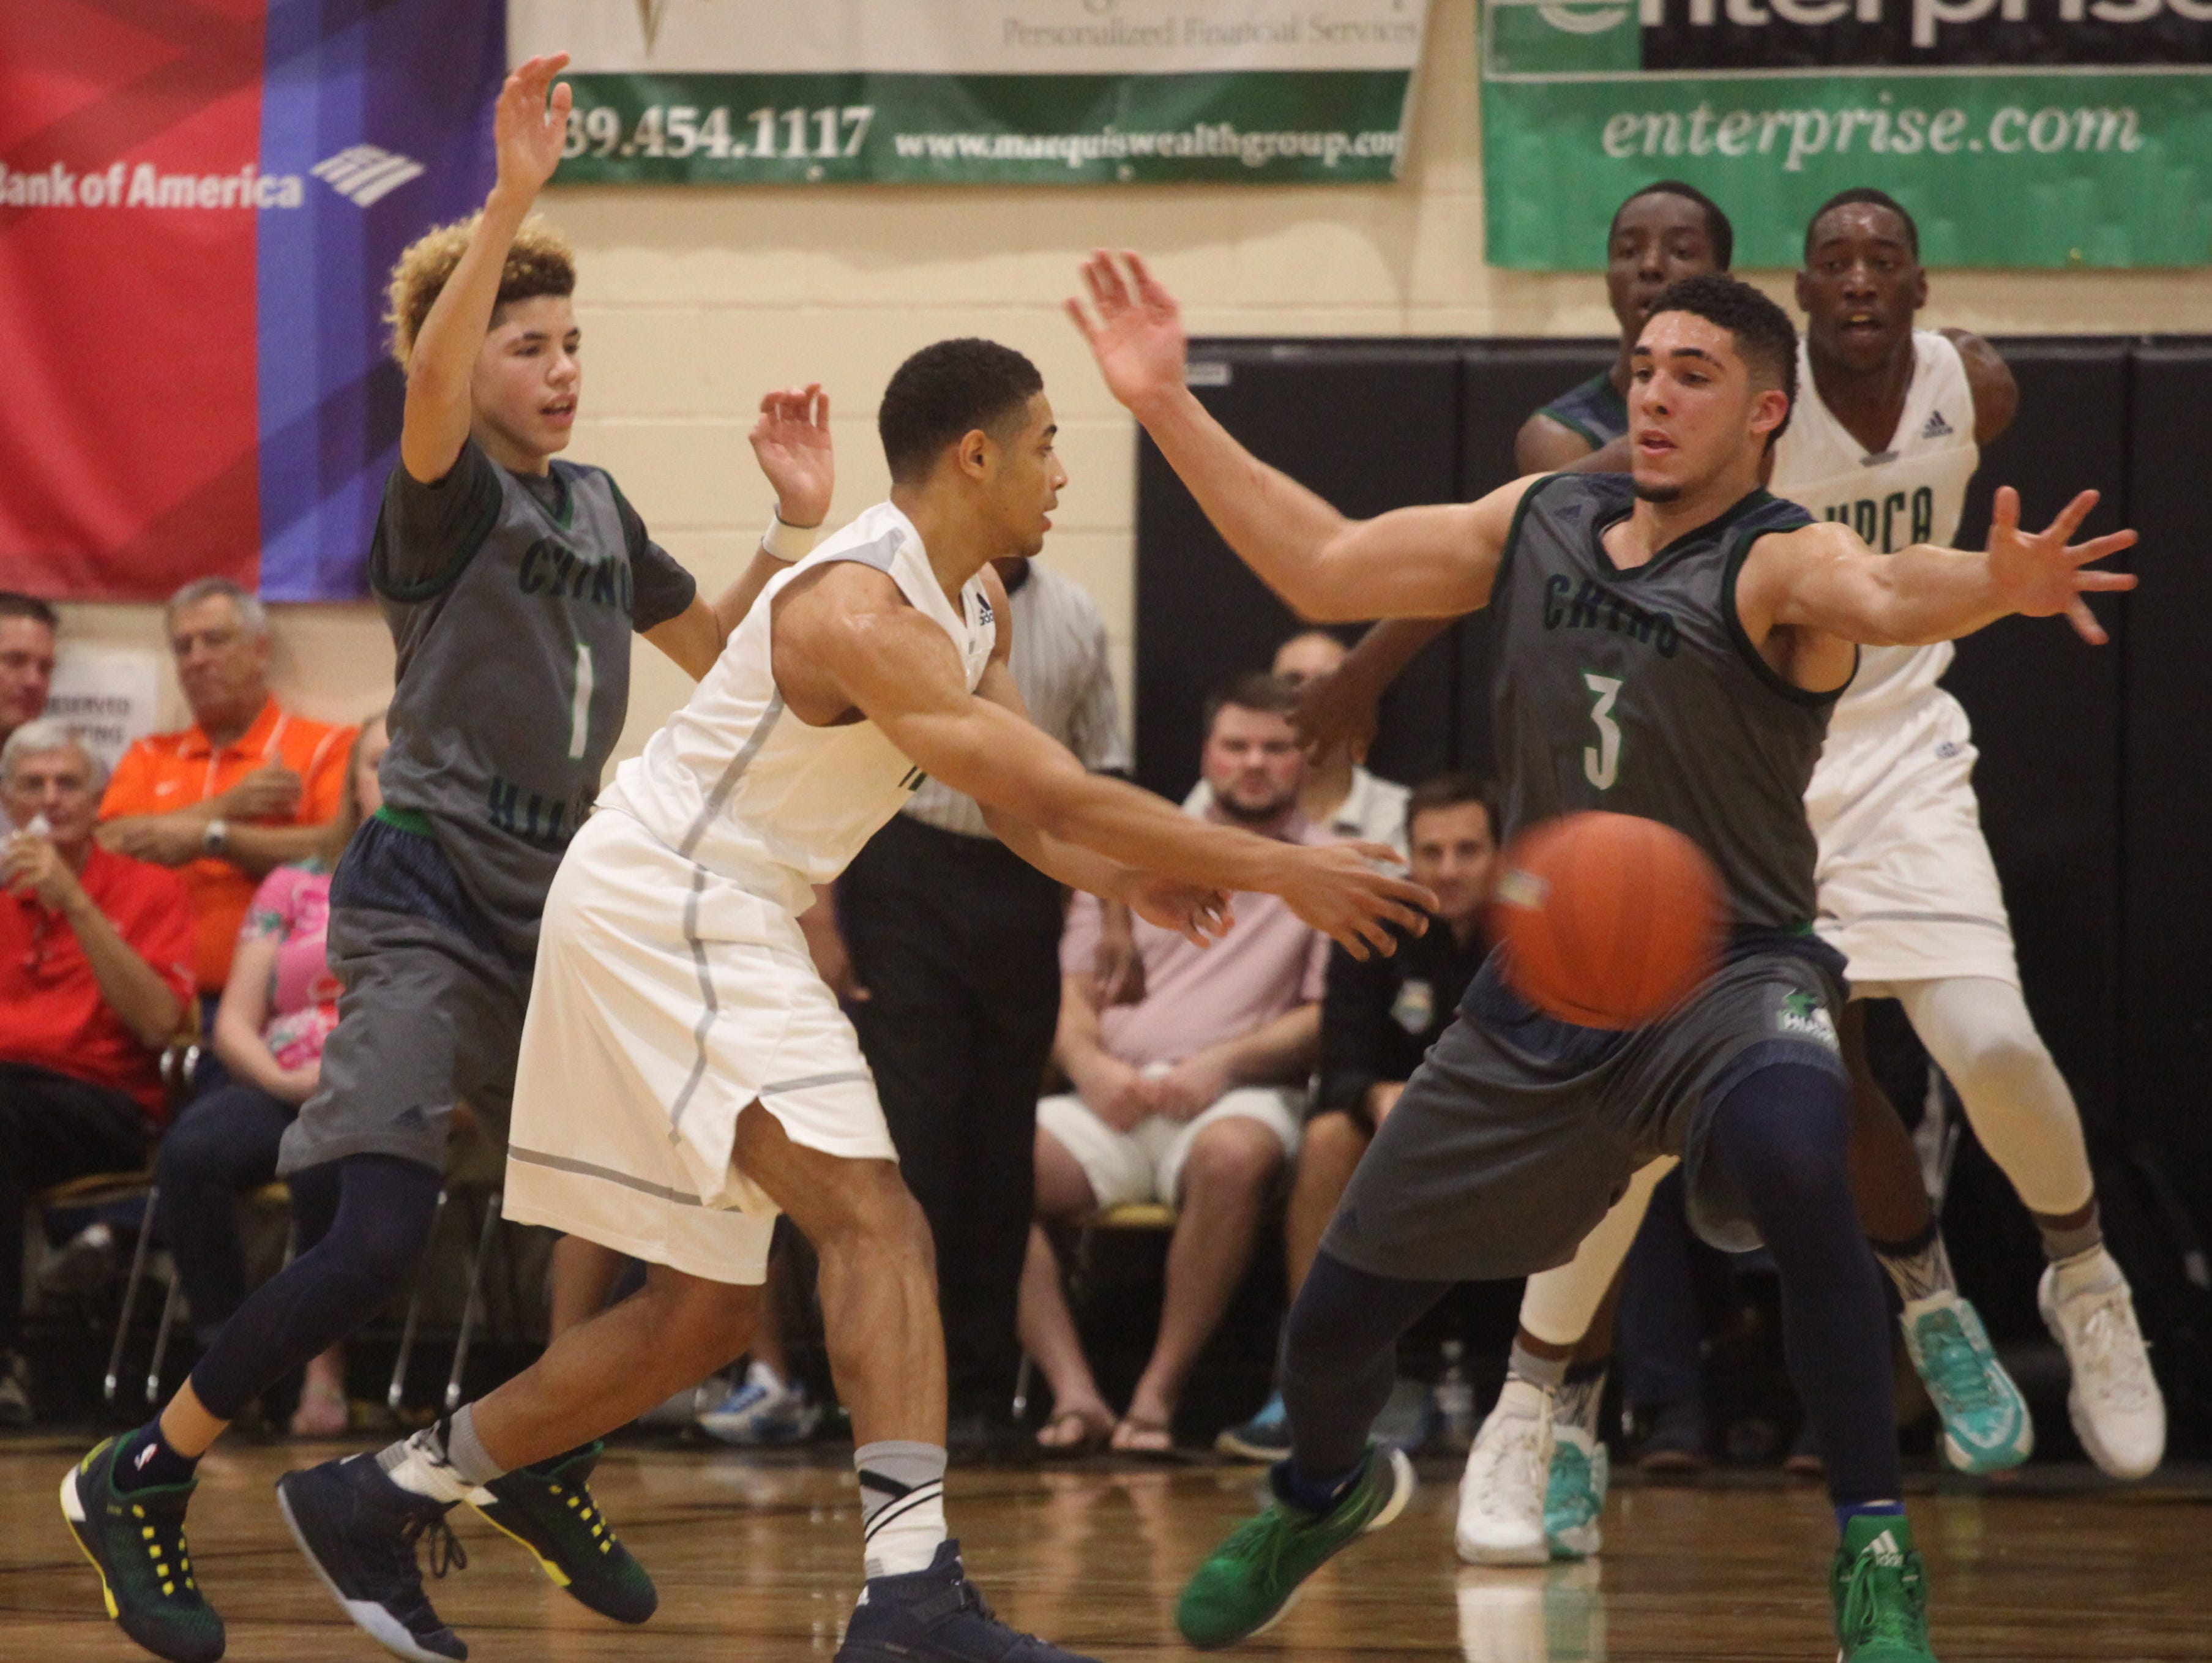 Chino Hills' LaMelo Ball, left, and LiAngelo Ball put up some heavy defense against High Point Christian Academy's Ty Graves during the City of Palms Semifinal on Tuesday night.